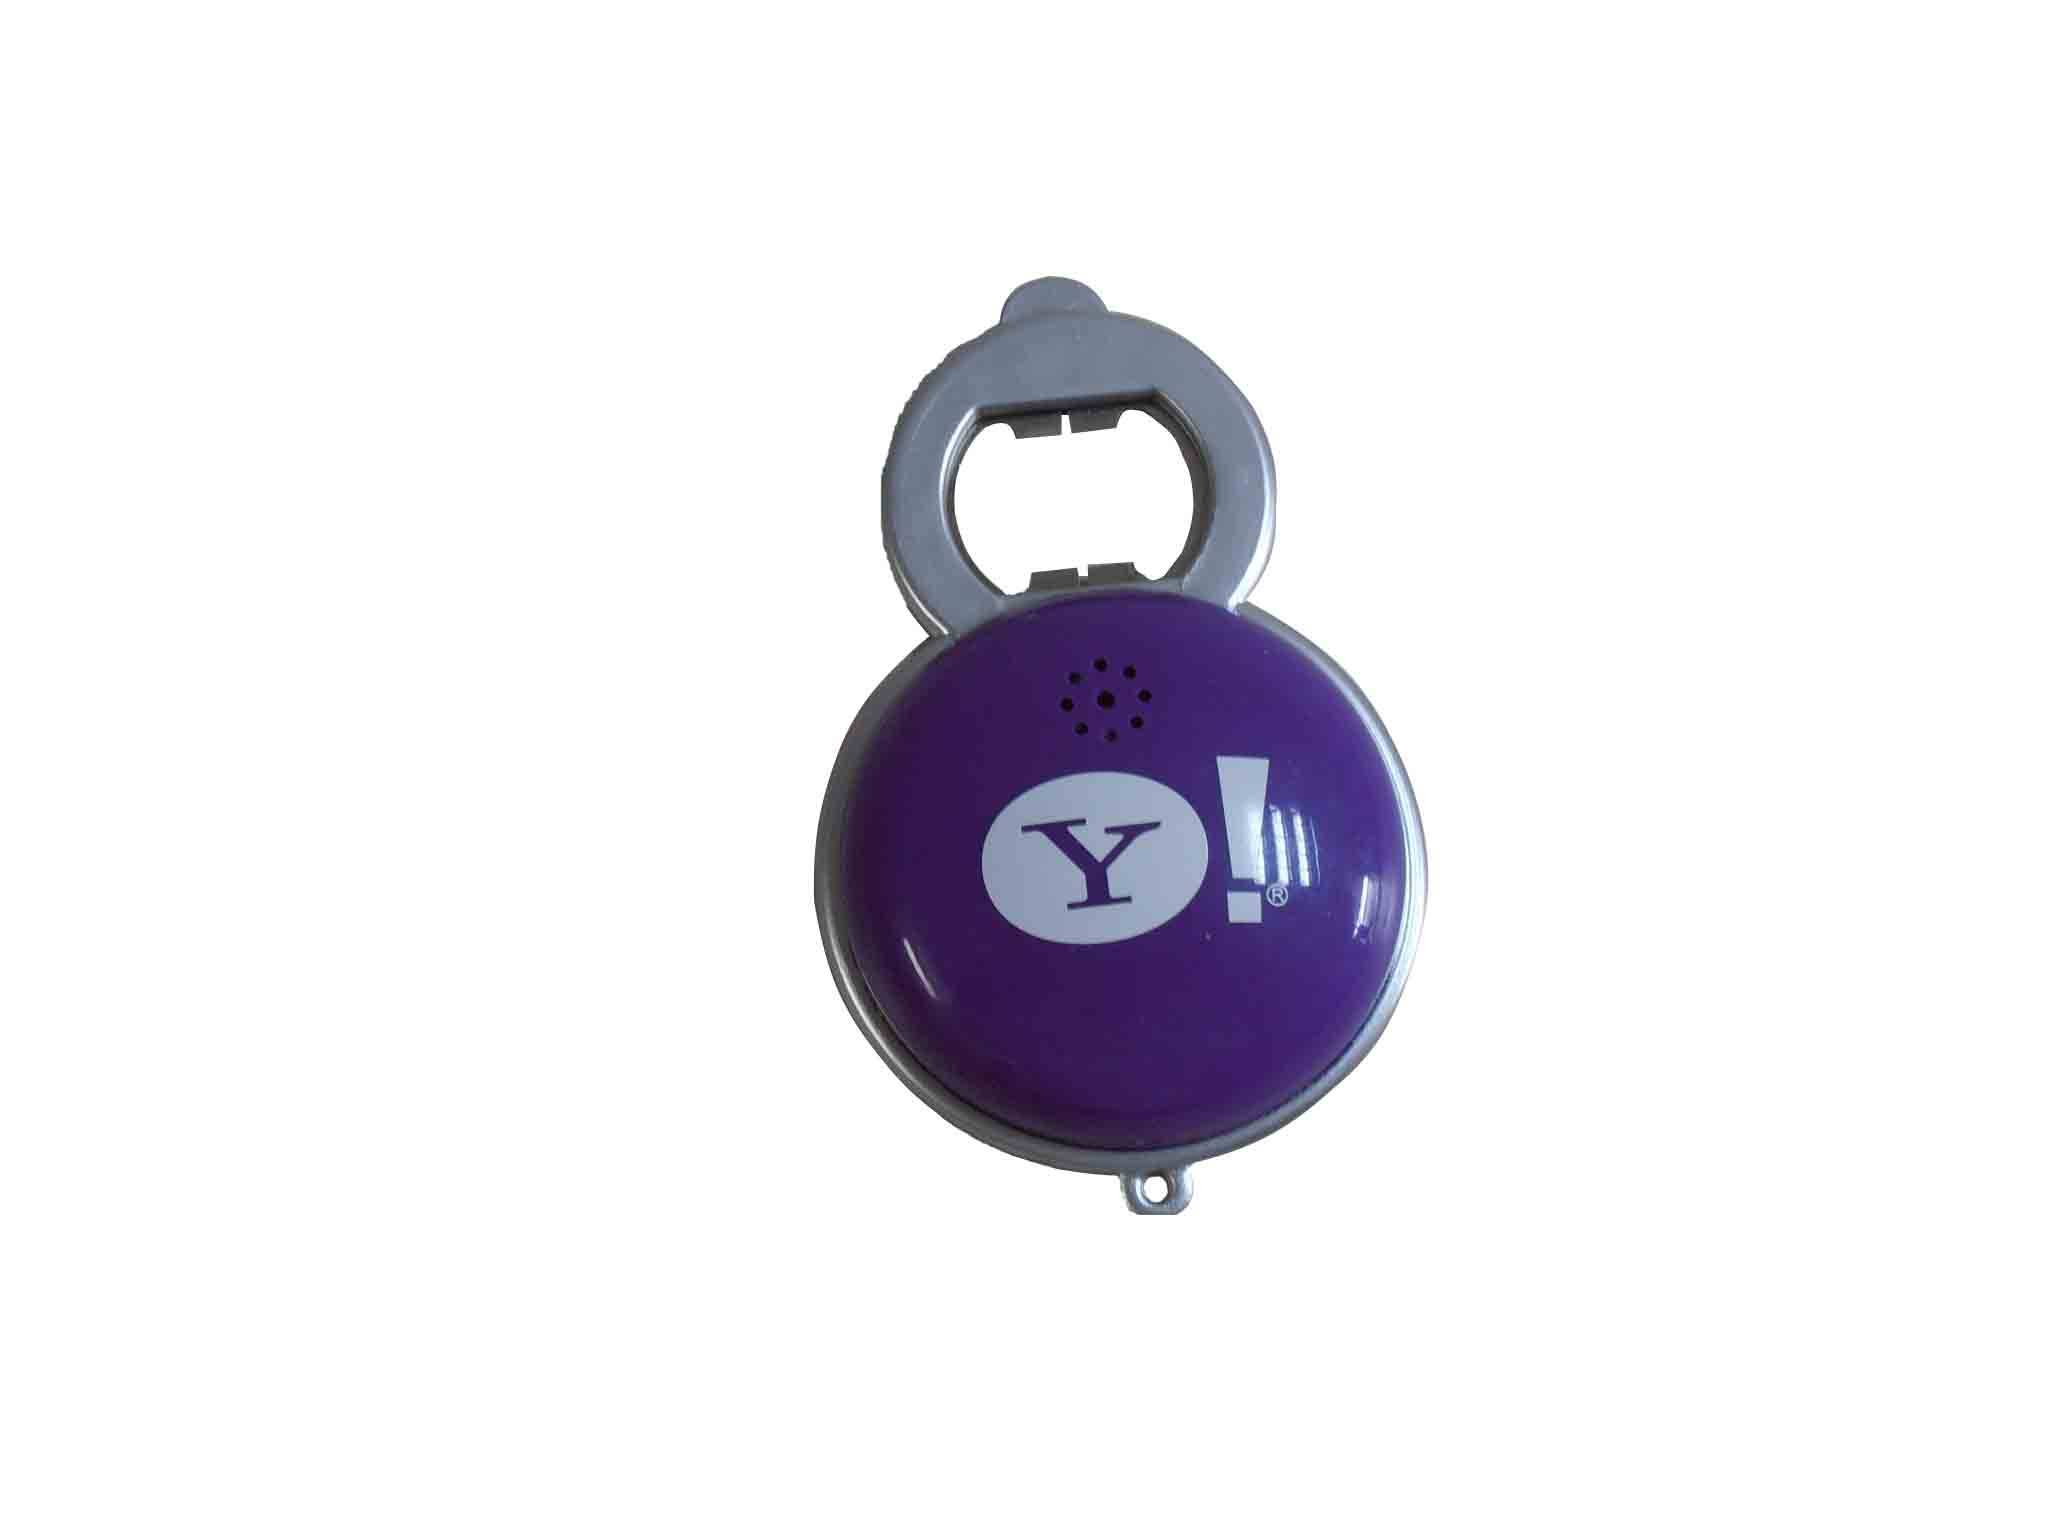 Promotional & Fashion Gifts Sound/Musical Bottle Opener